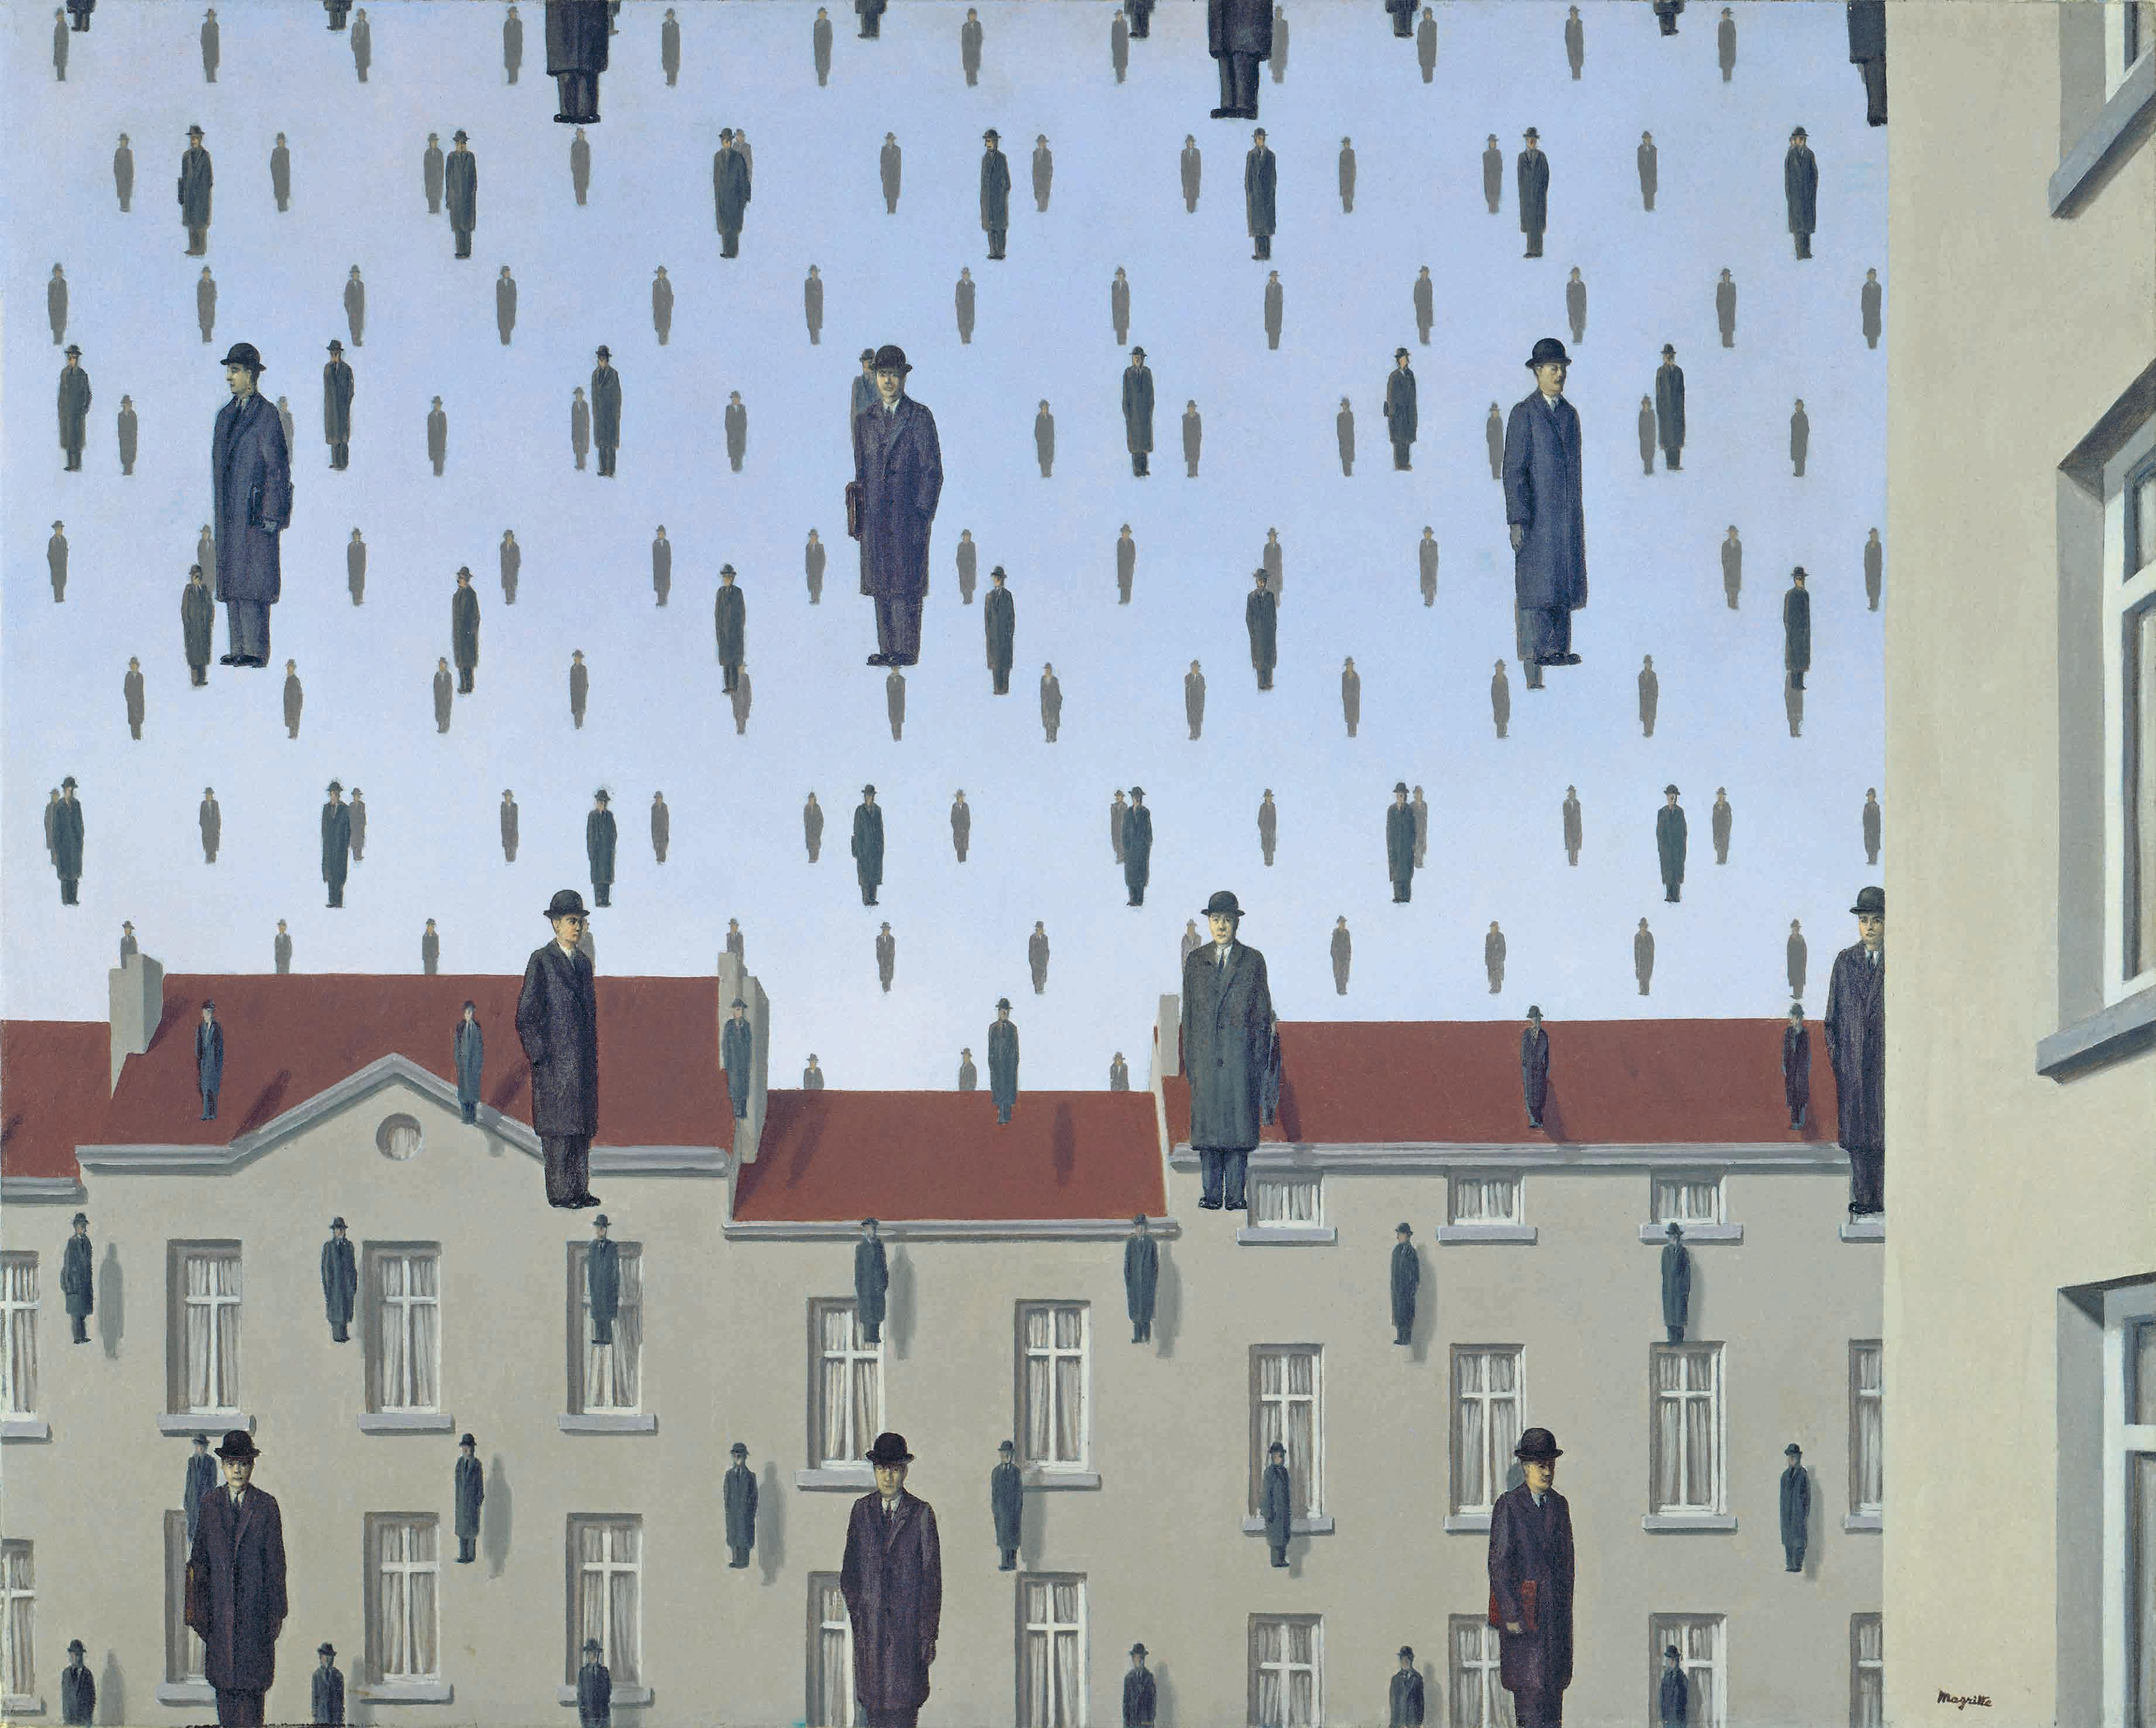 The marvellous mind of Magritte